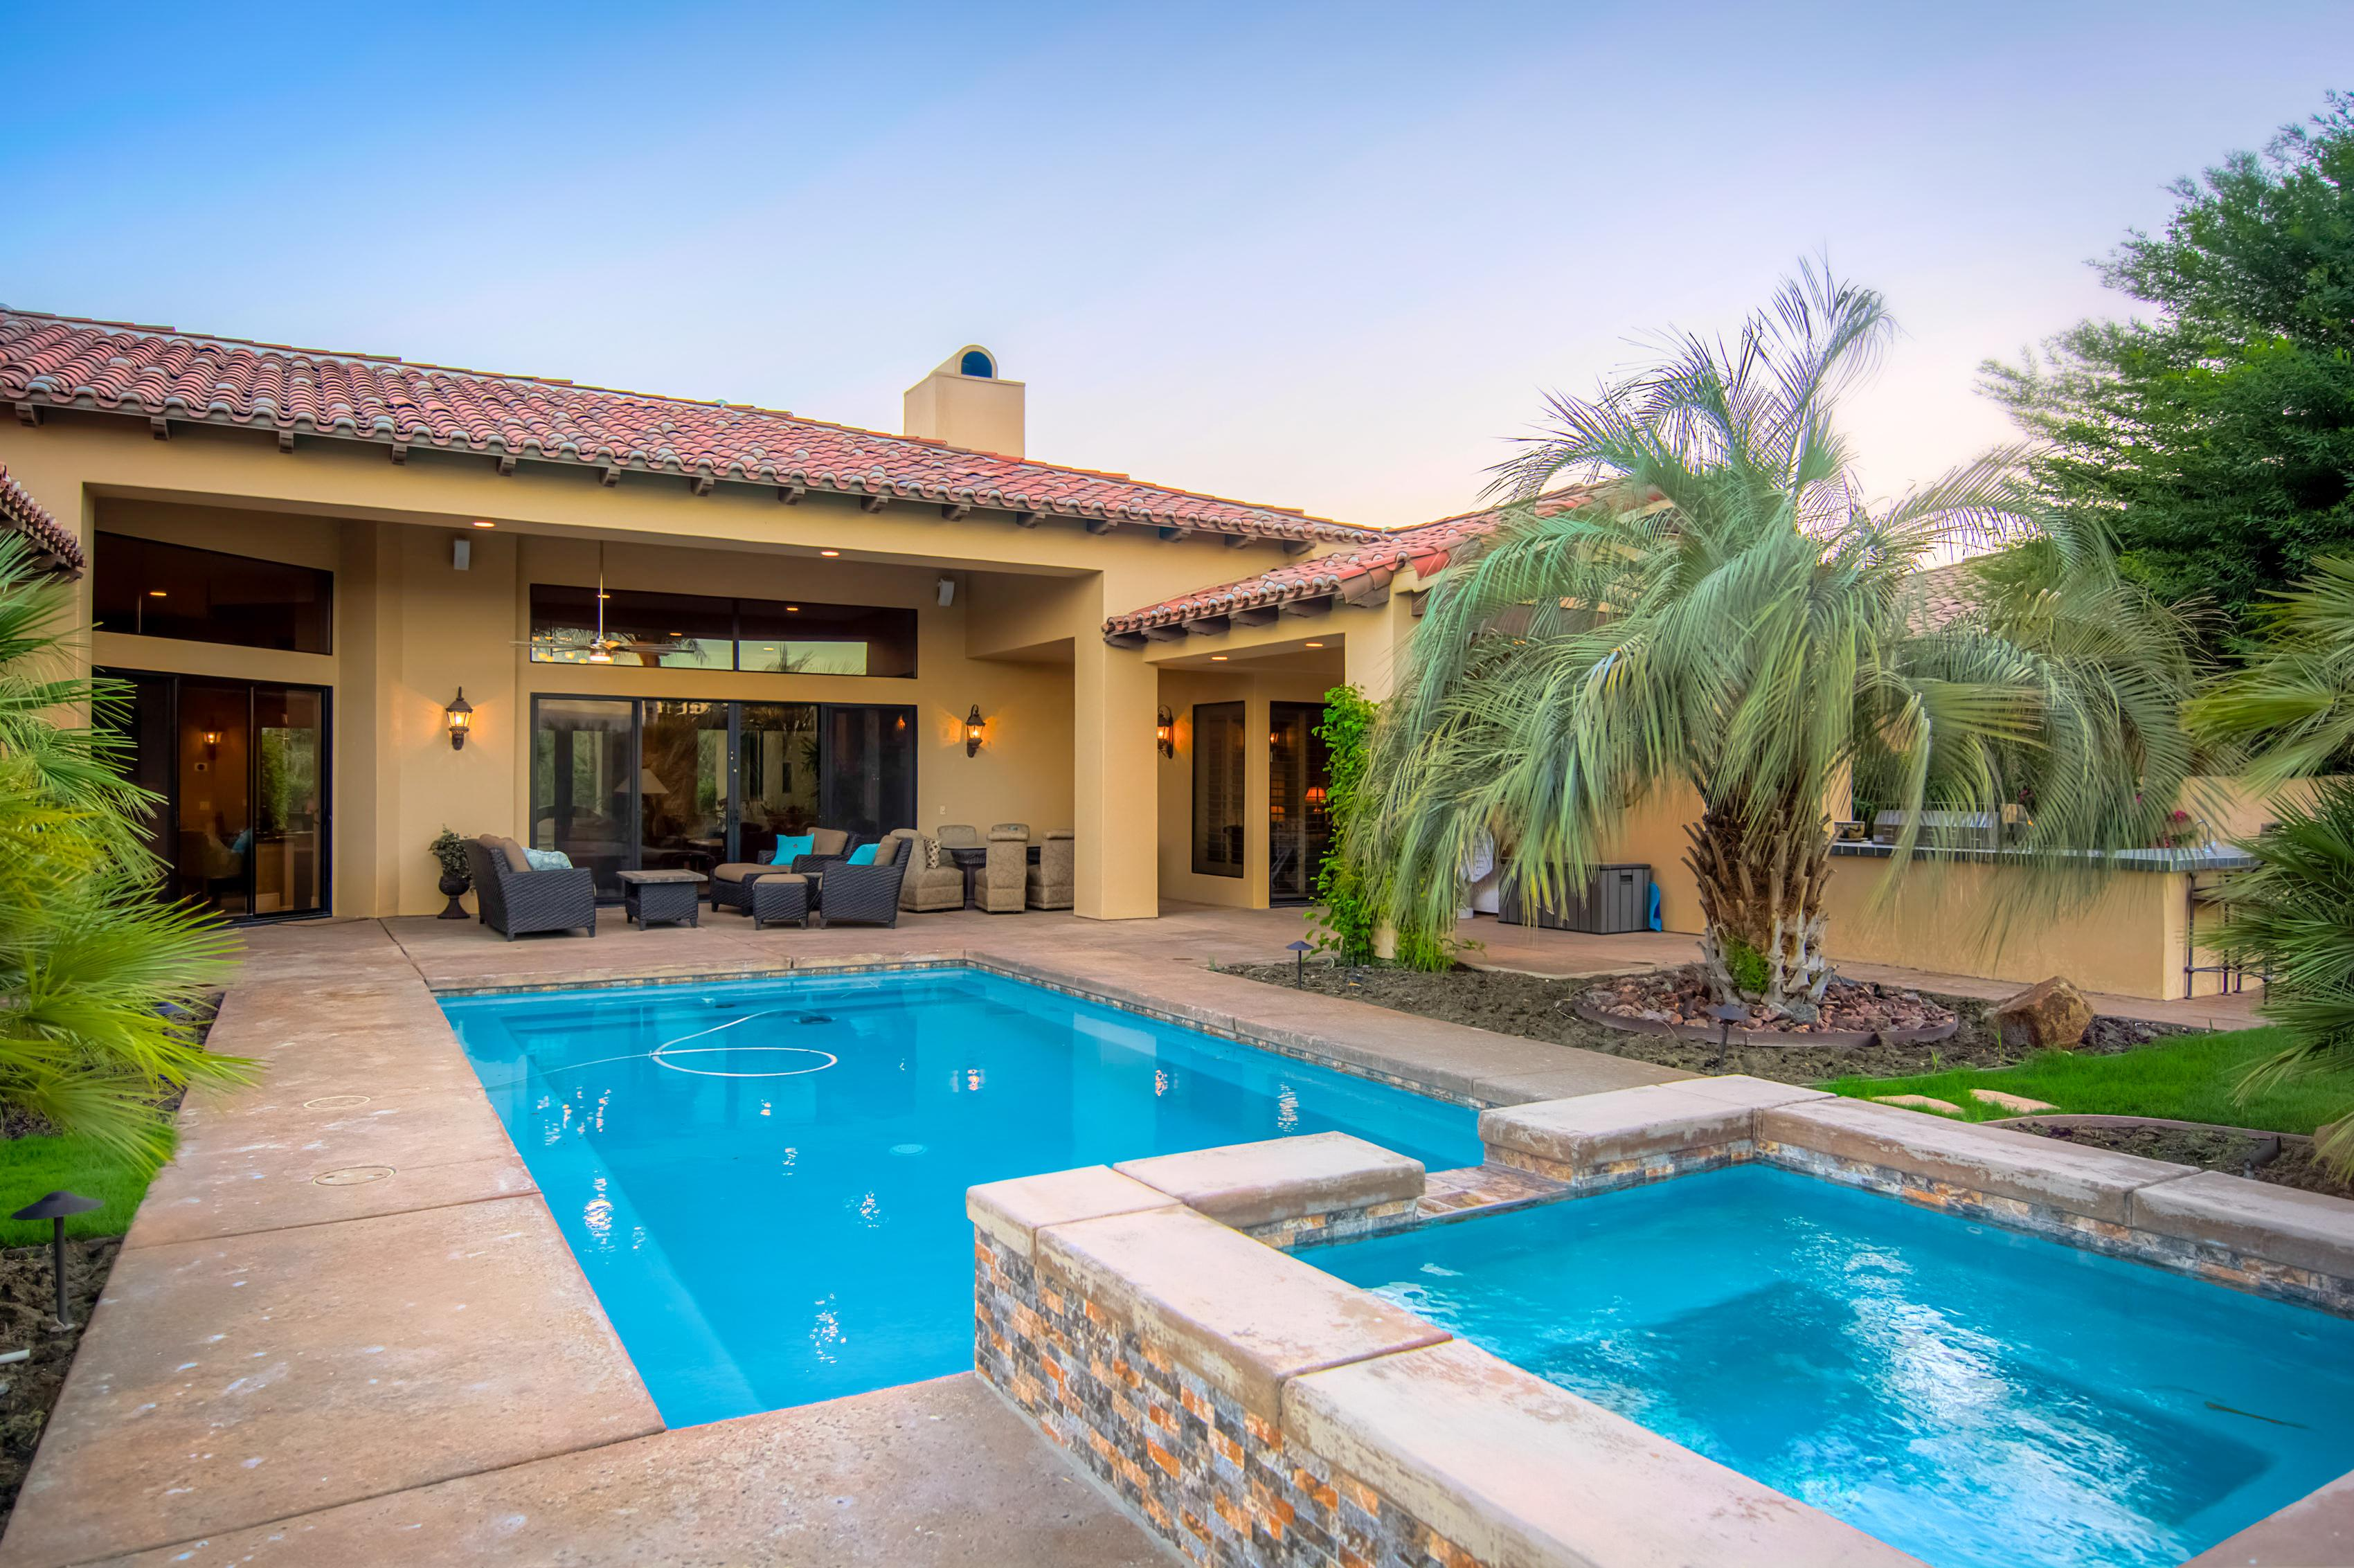 Welcome to your desert paradise in La Quinta, professionally managed by TurnKey Vacation Rentals.